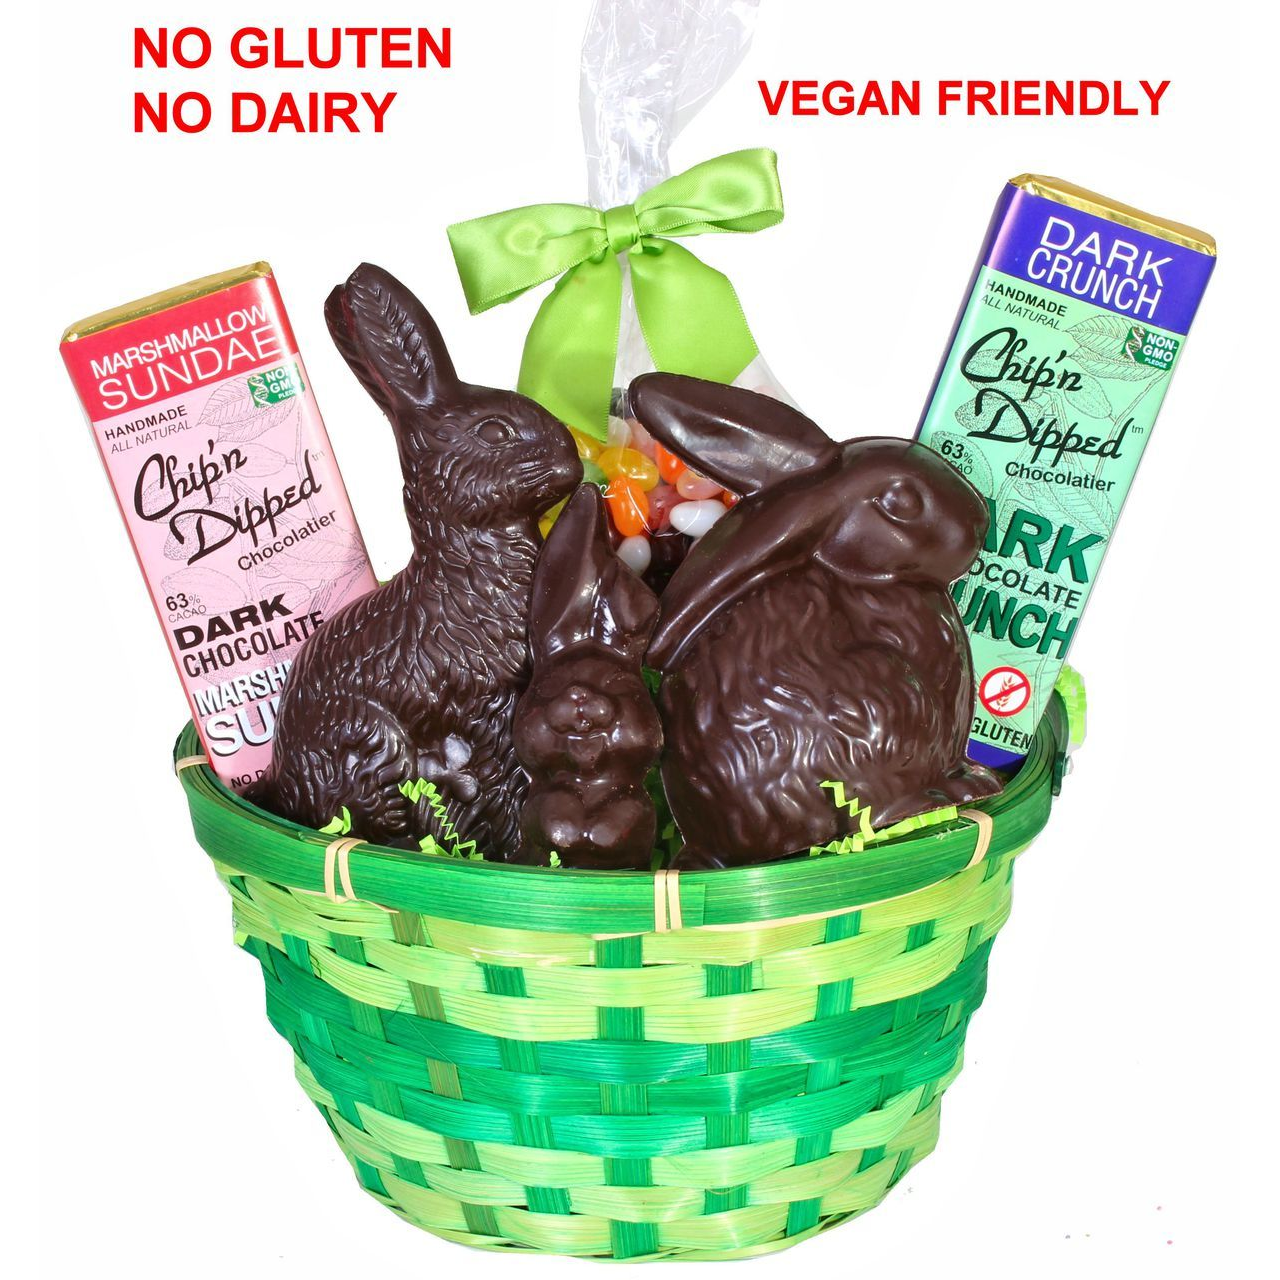 Vegan easter basket chipn dipped chocolatier vegan easter basket negle